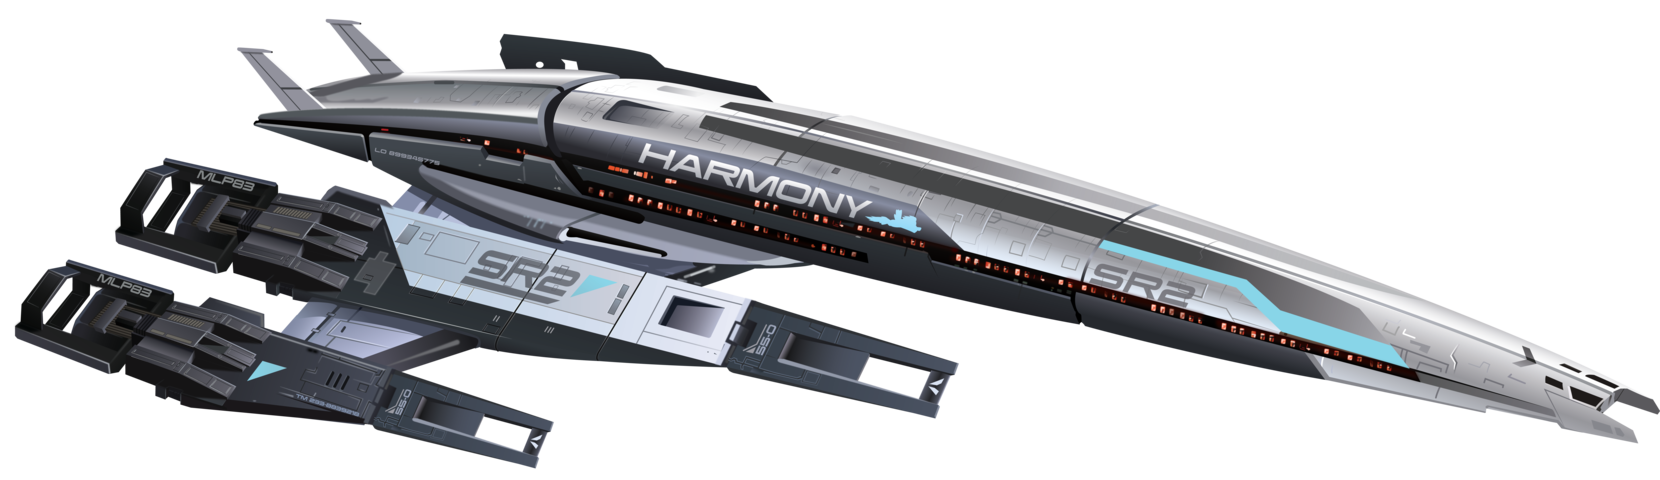 Mass effect normandy png. The harmony sr by